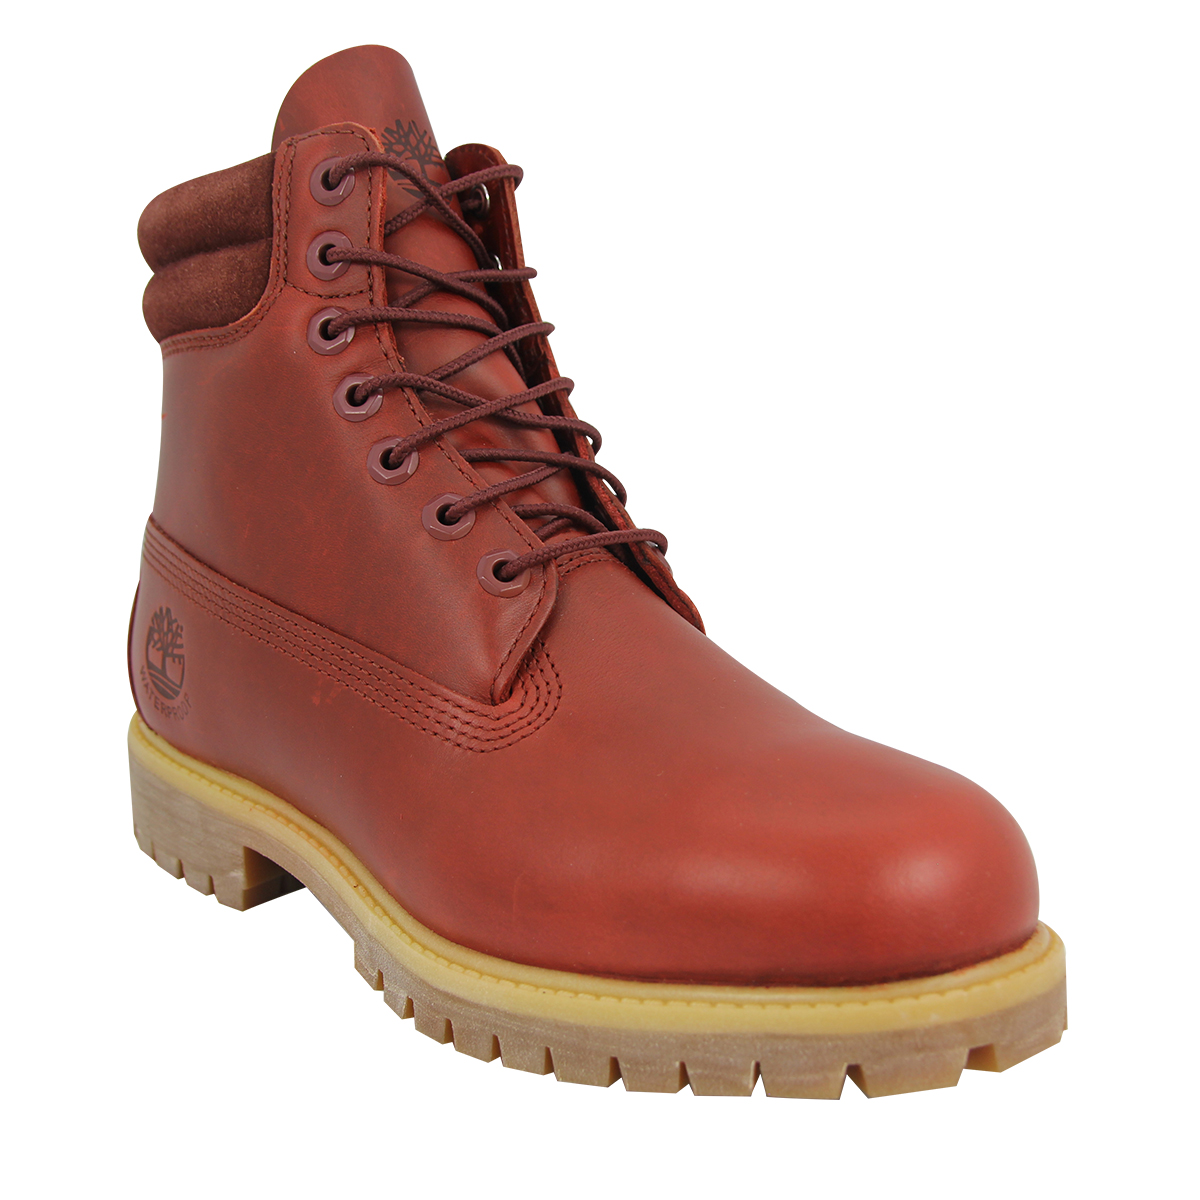 fc2e8df6d96 Timberland 6 IN PREMIUM BOOTS Bottines Homme Cuir Suede